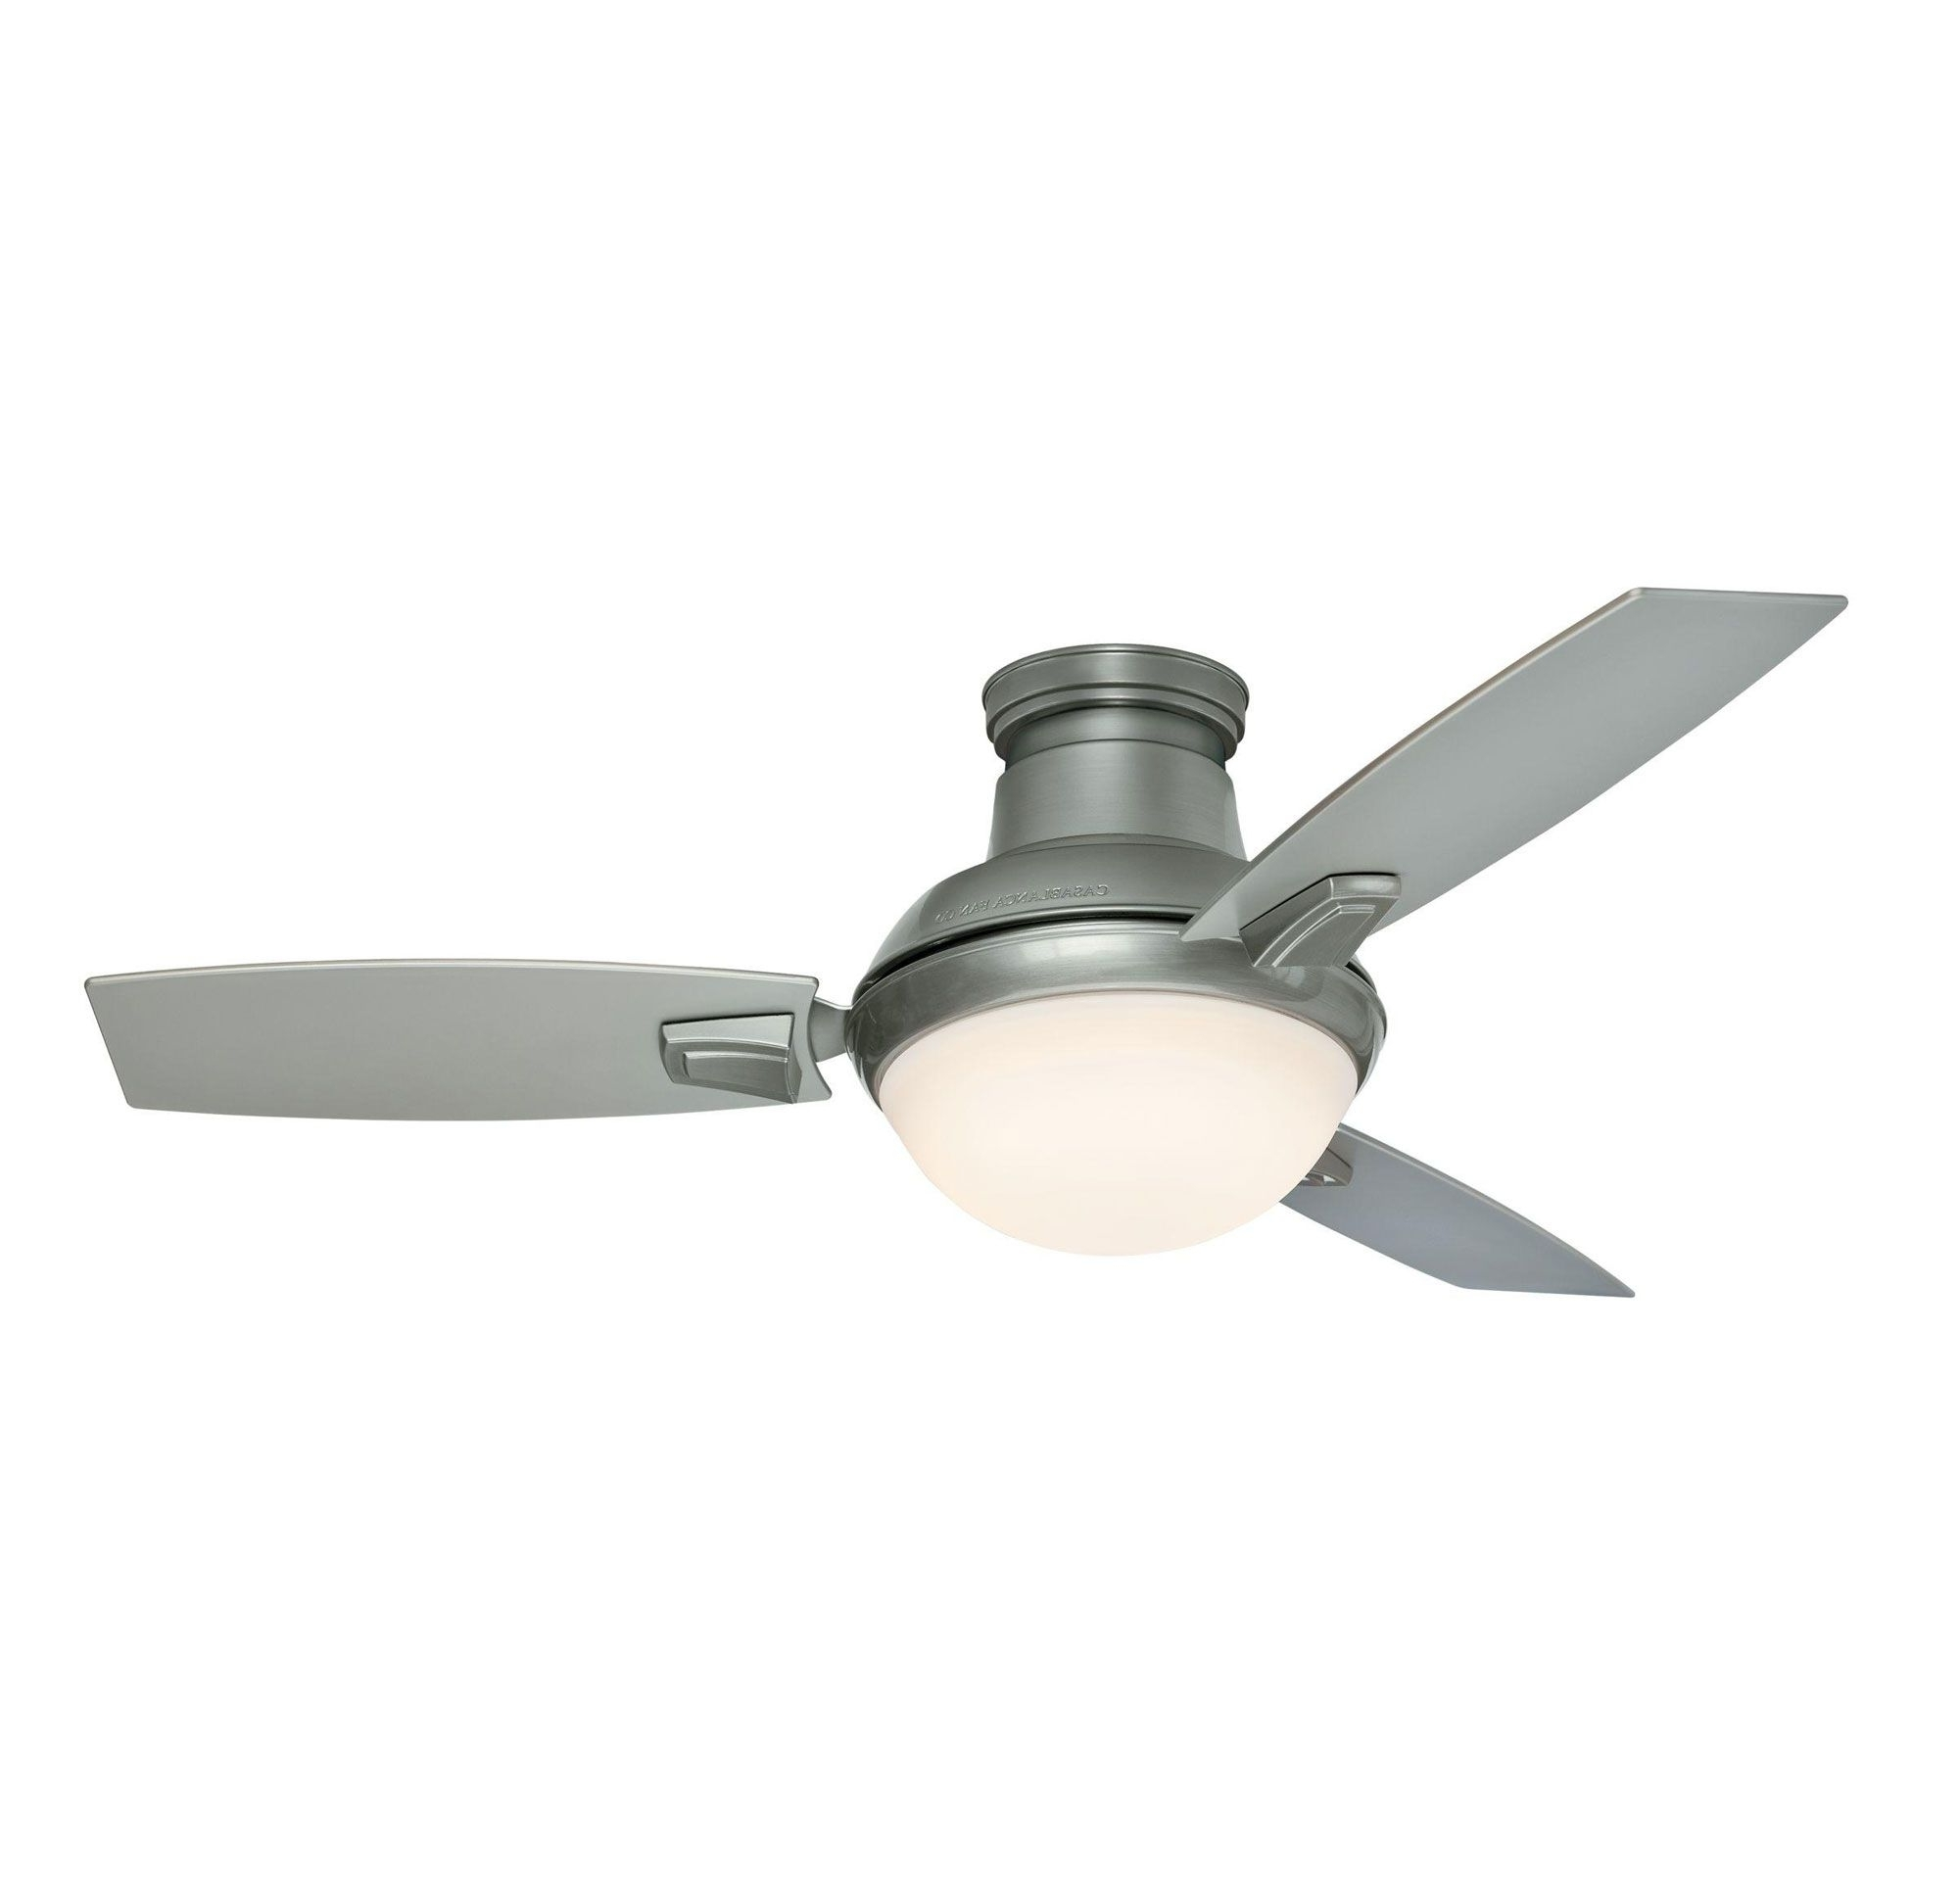 Fashionable Verse 44 Inch Led Ceiling Fan Is Perfect For A Small Or Medium Sized Inside 44 Inch Outdoor Ceiling Fans With Lights (Gallery 13 of 20)